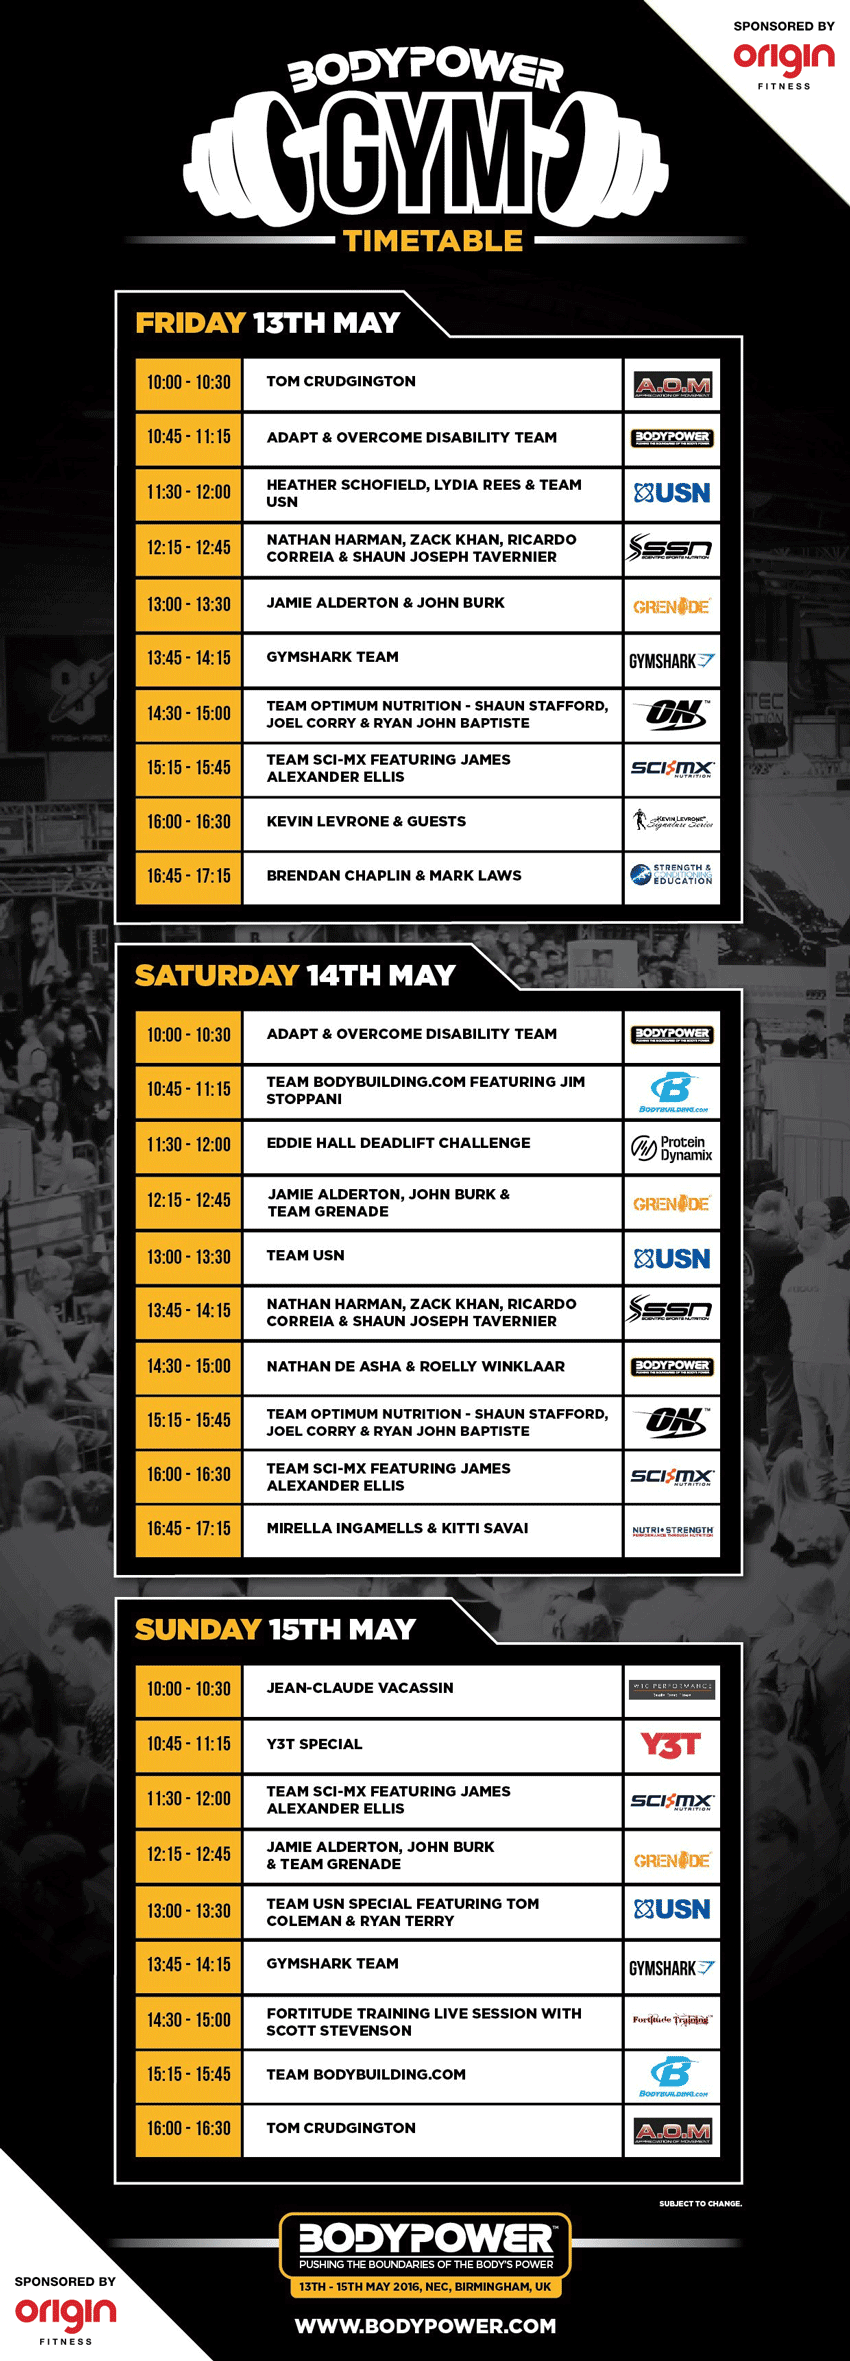 bodypower-gym-timetable-for-bodypower-expo-2016